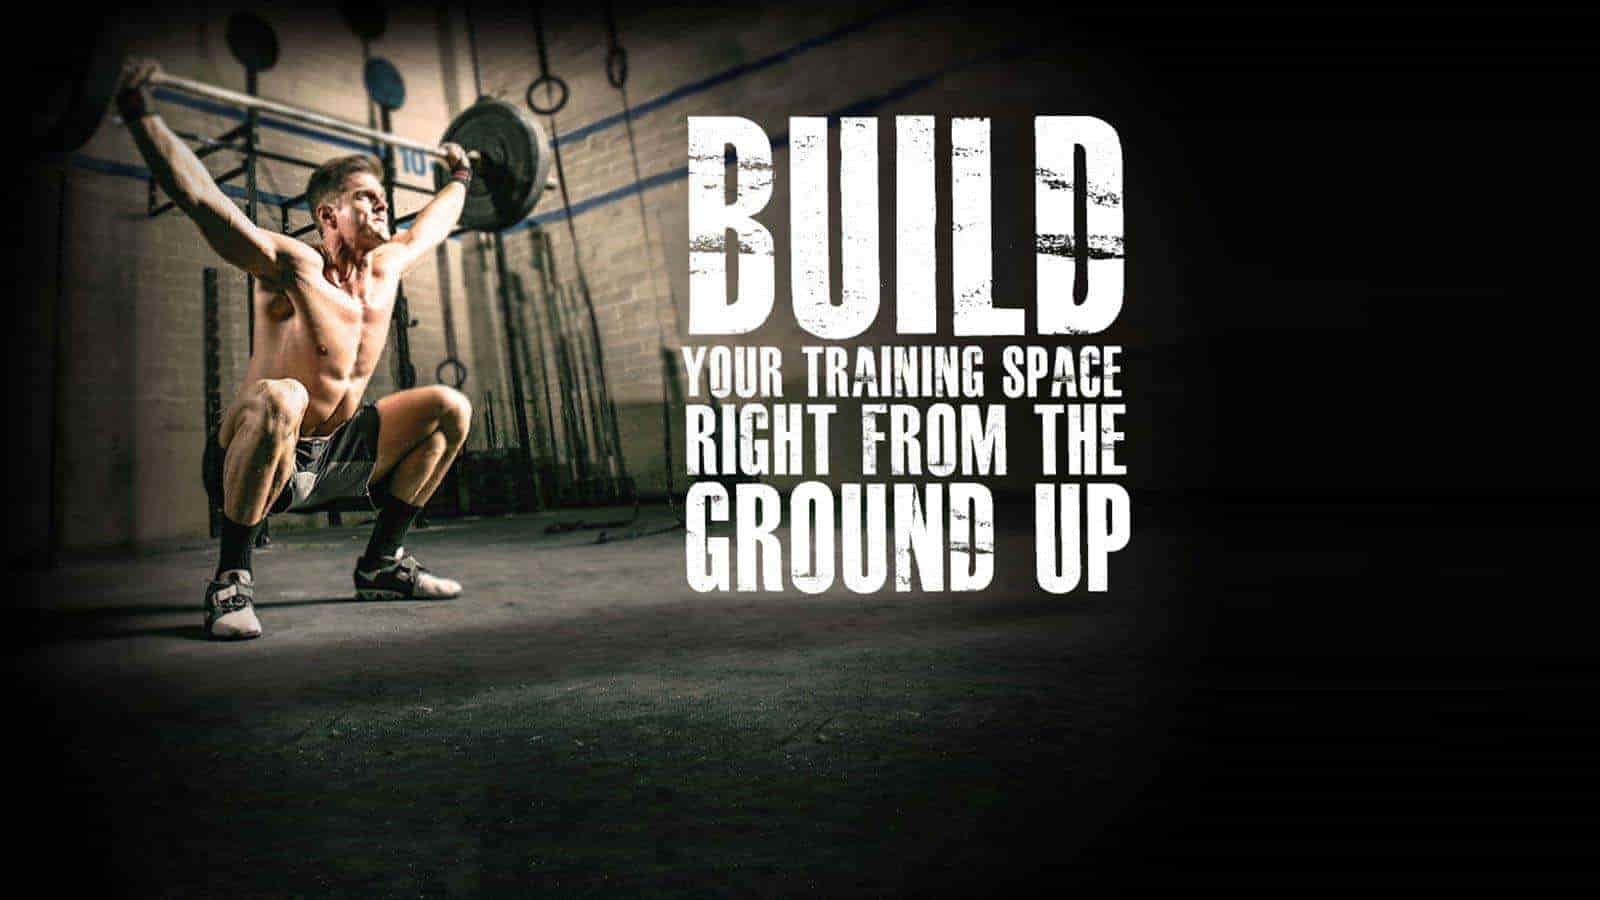 BUILD YOUR TRAINING SPACE RIGHT FROM THE GROUND UP